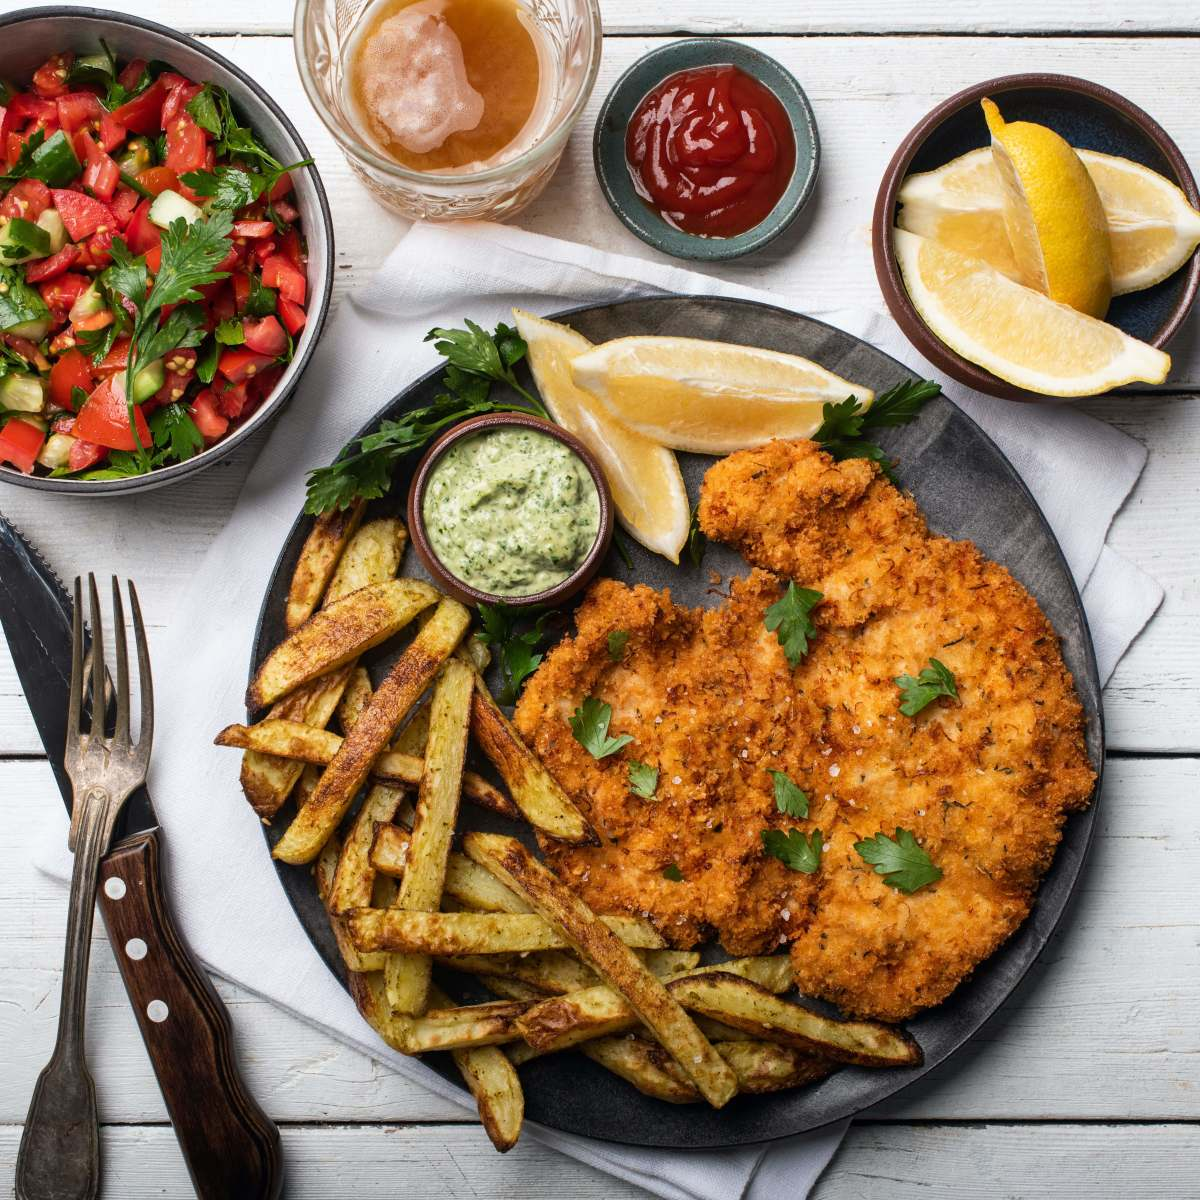 Crispy Schnitzel with Israeli Salad and Oven Fries